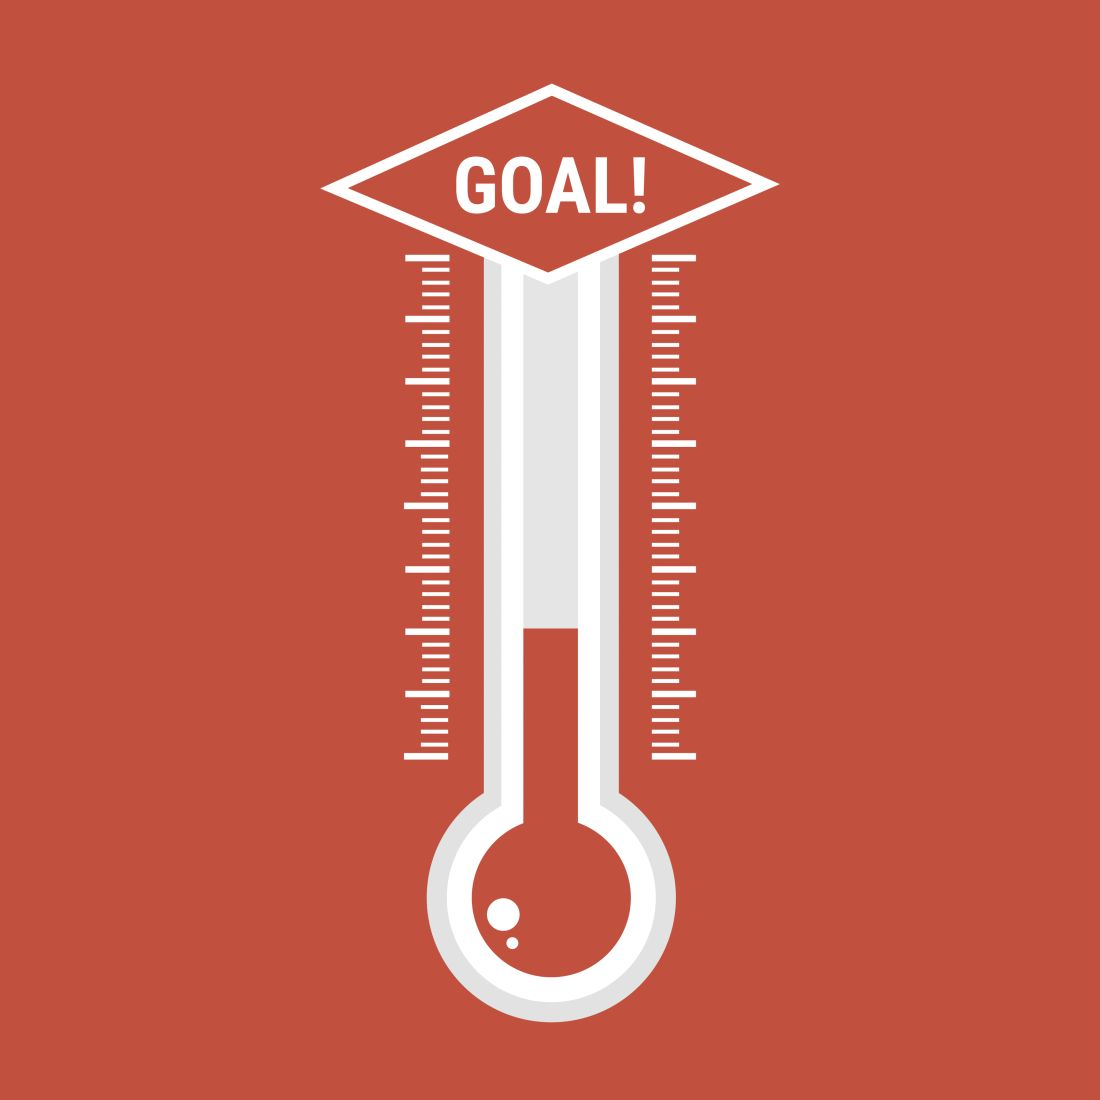 a thermometer to measure the way to a goal.